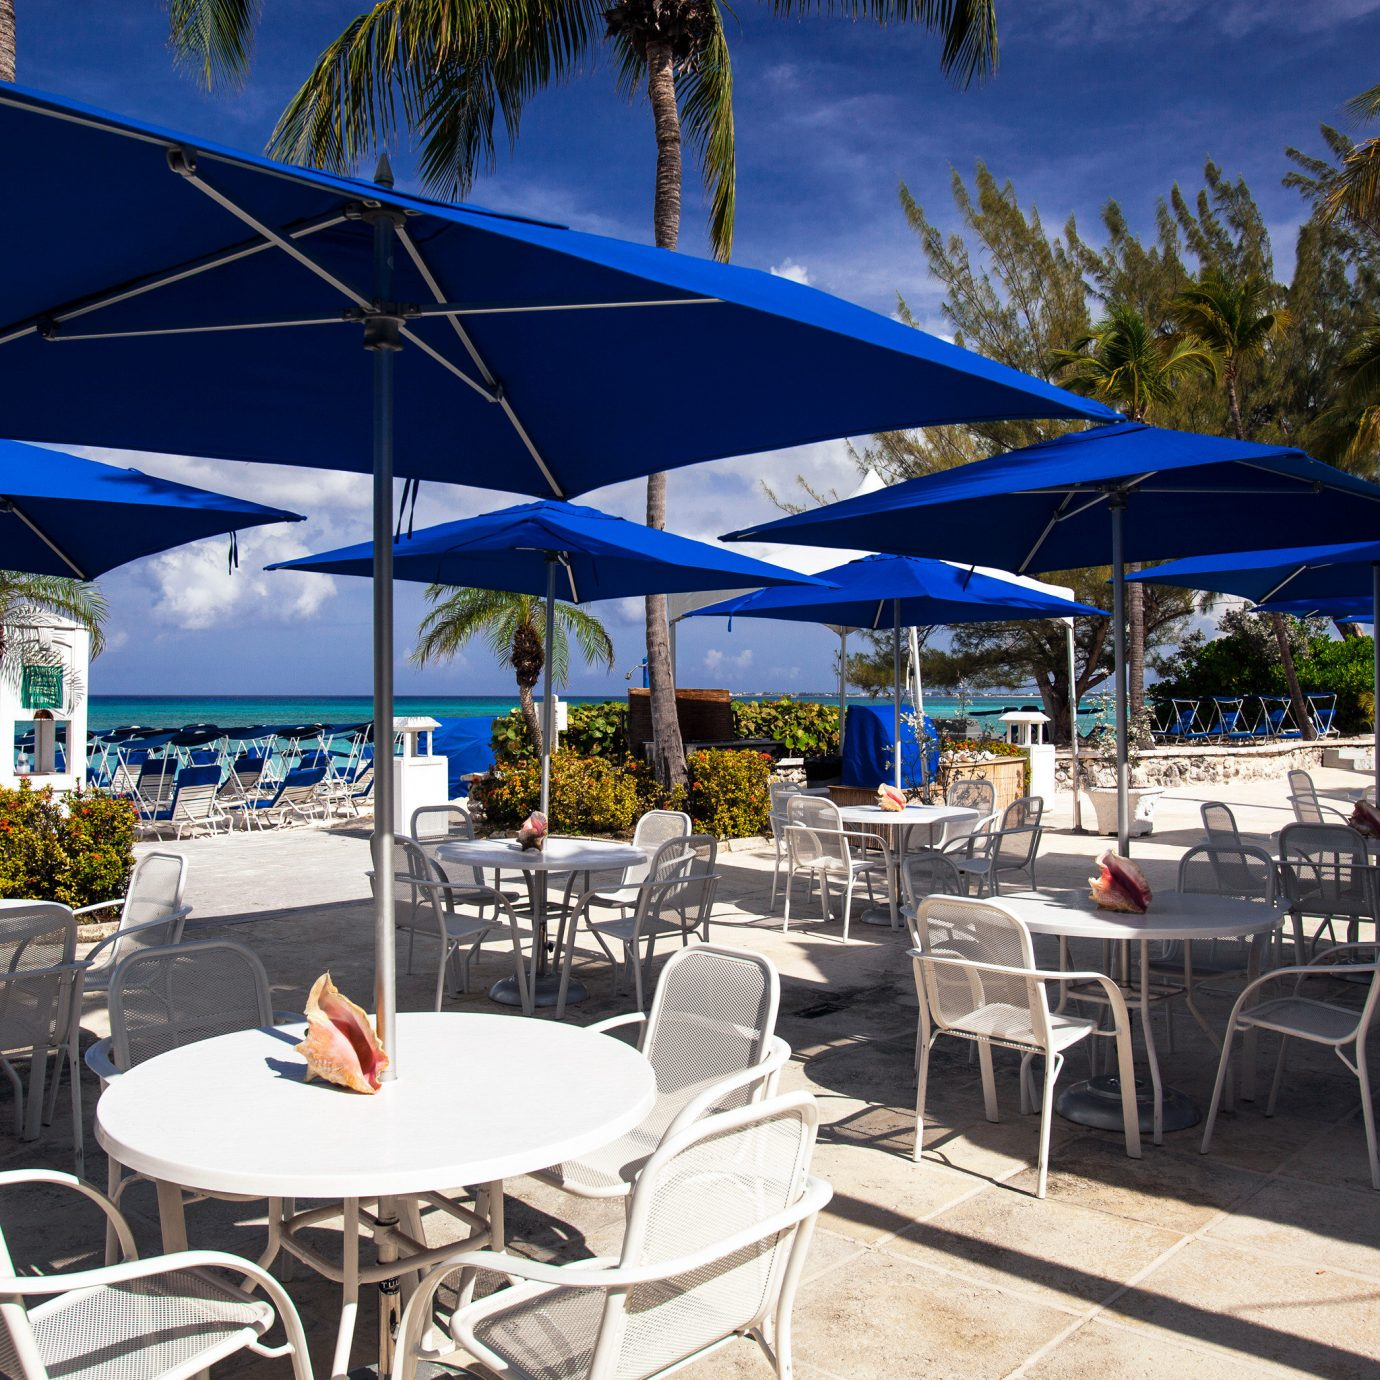 Beach Deck Dining Drink Eat Modern Outdoors tree umbrella chair restaurant Resort vehicle caribbean lawn marina blue set shade day